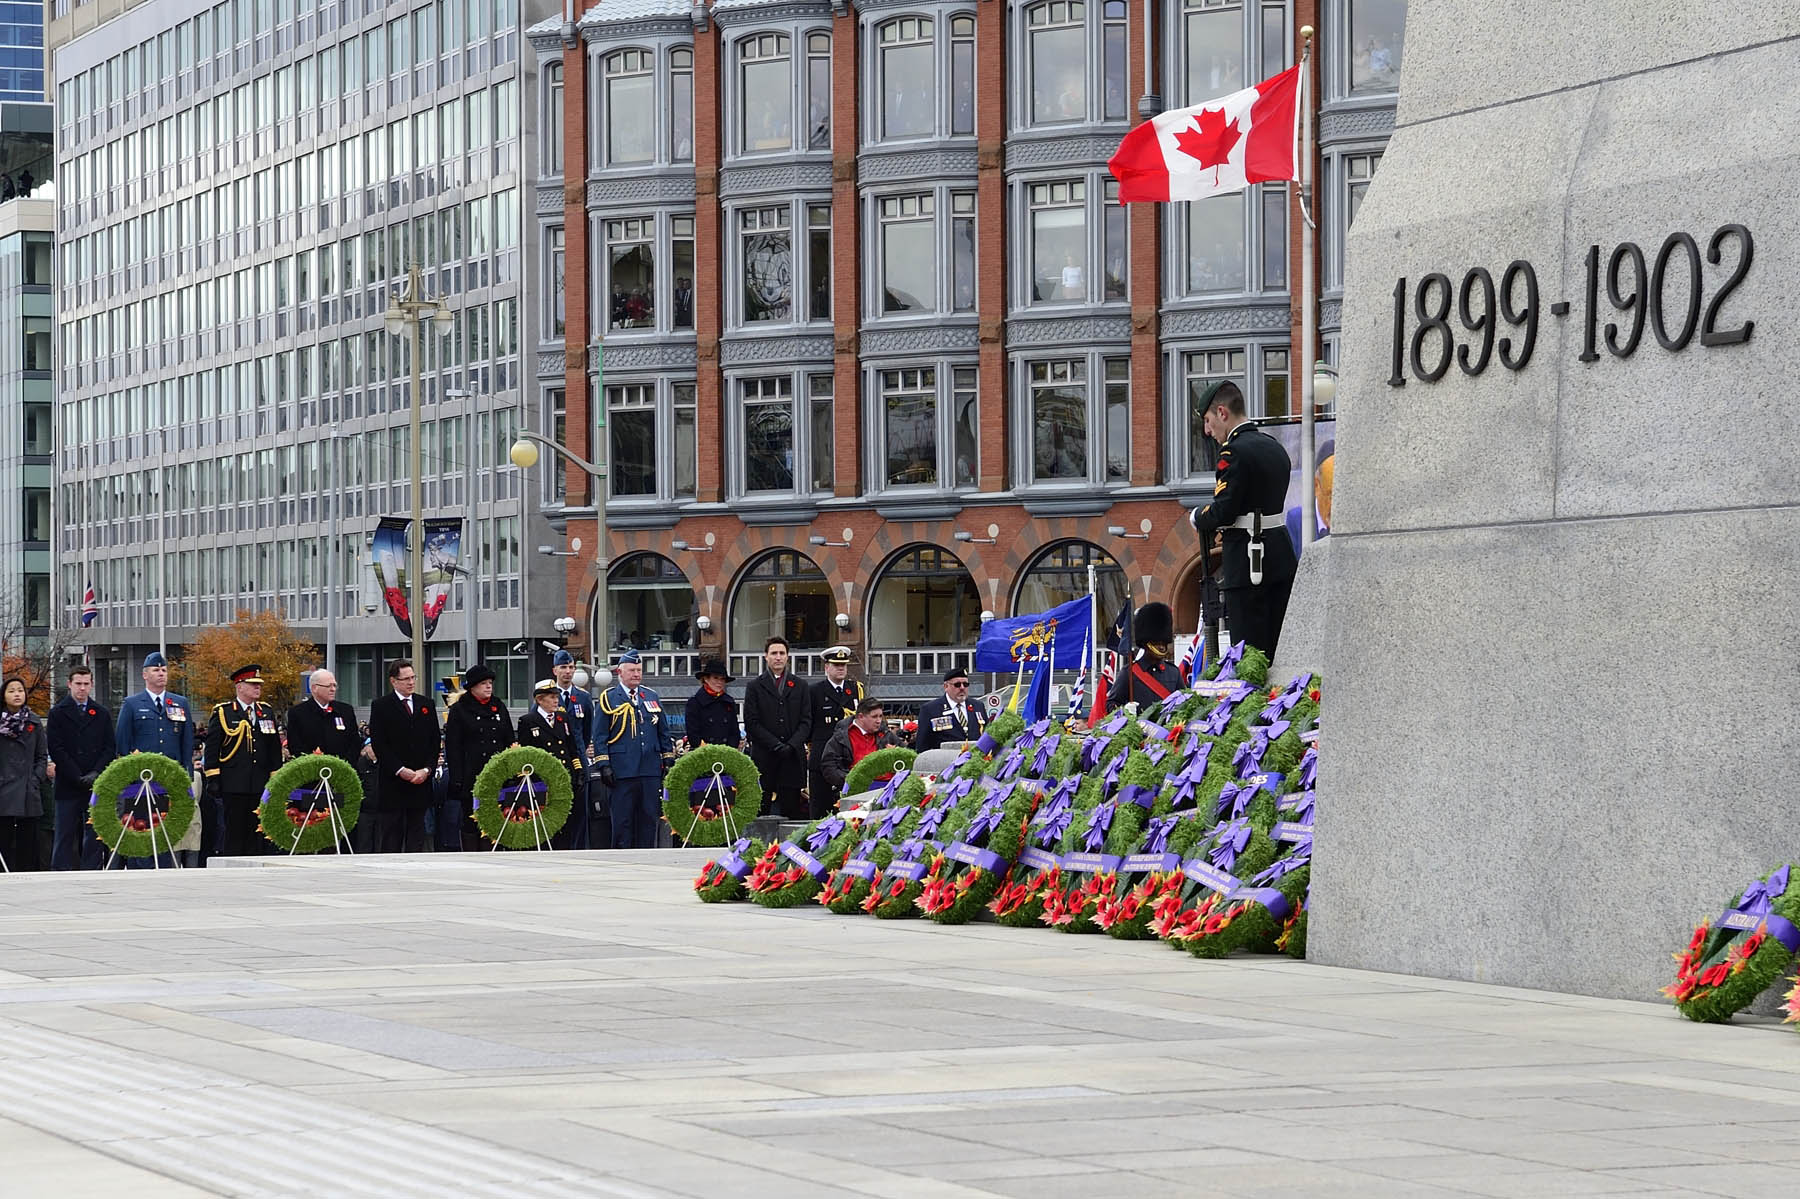 Hundreds of wreaths were laid at the Remembrance Day Ceremony.